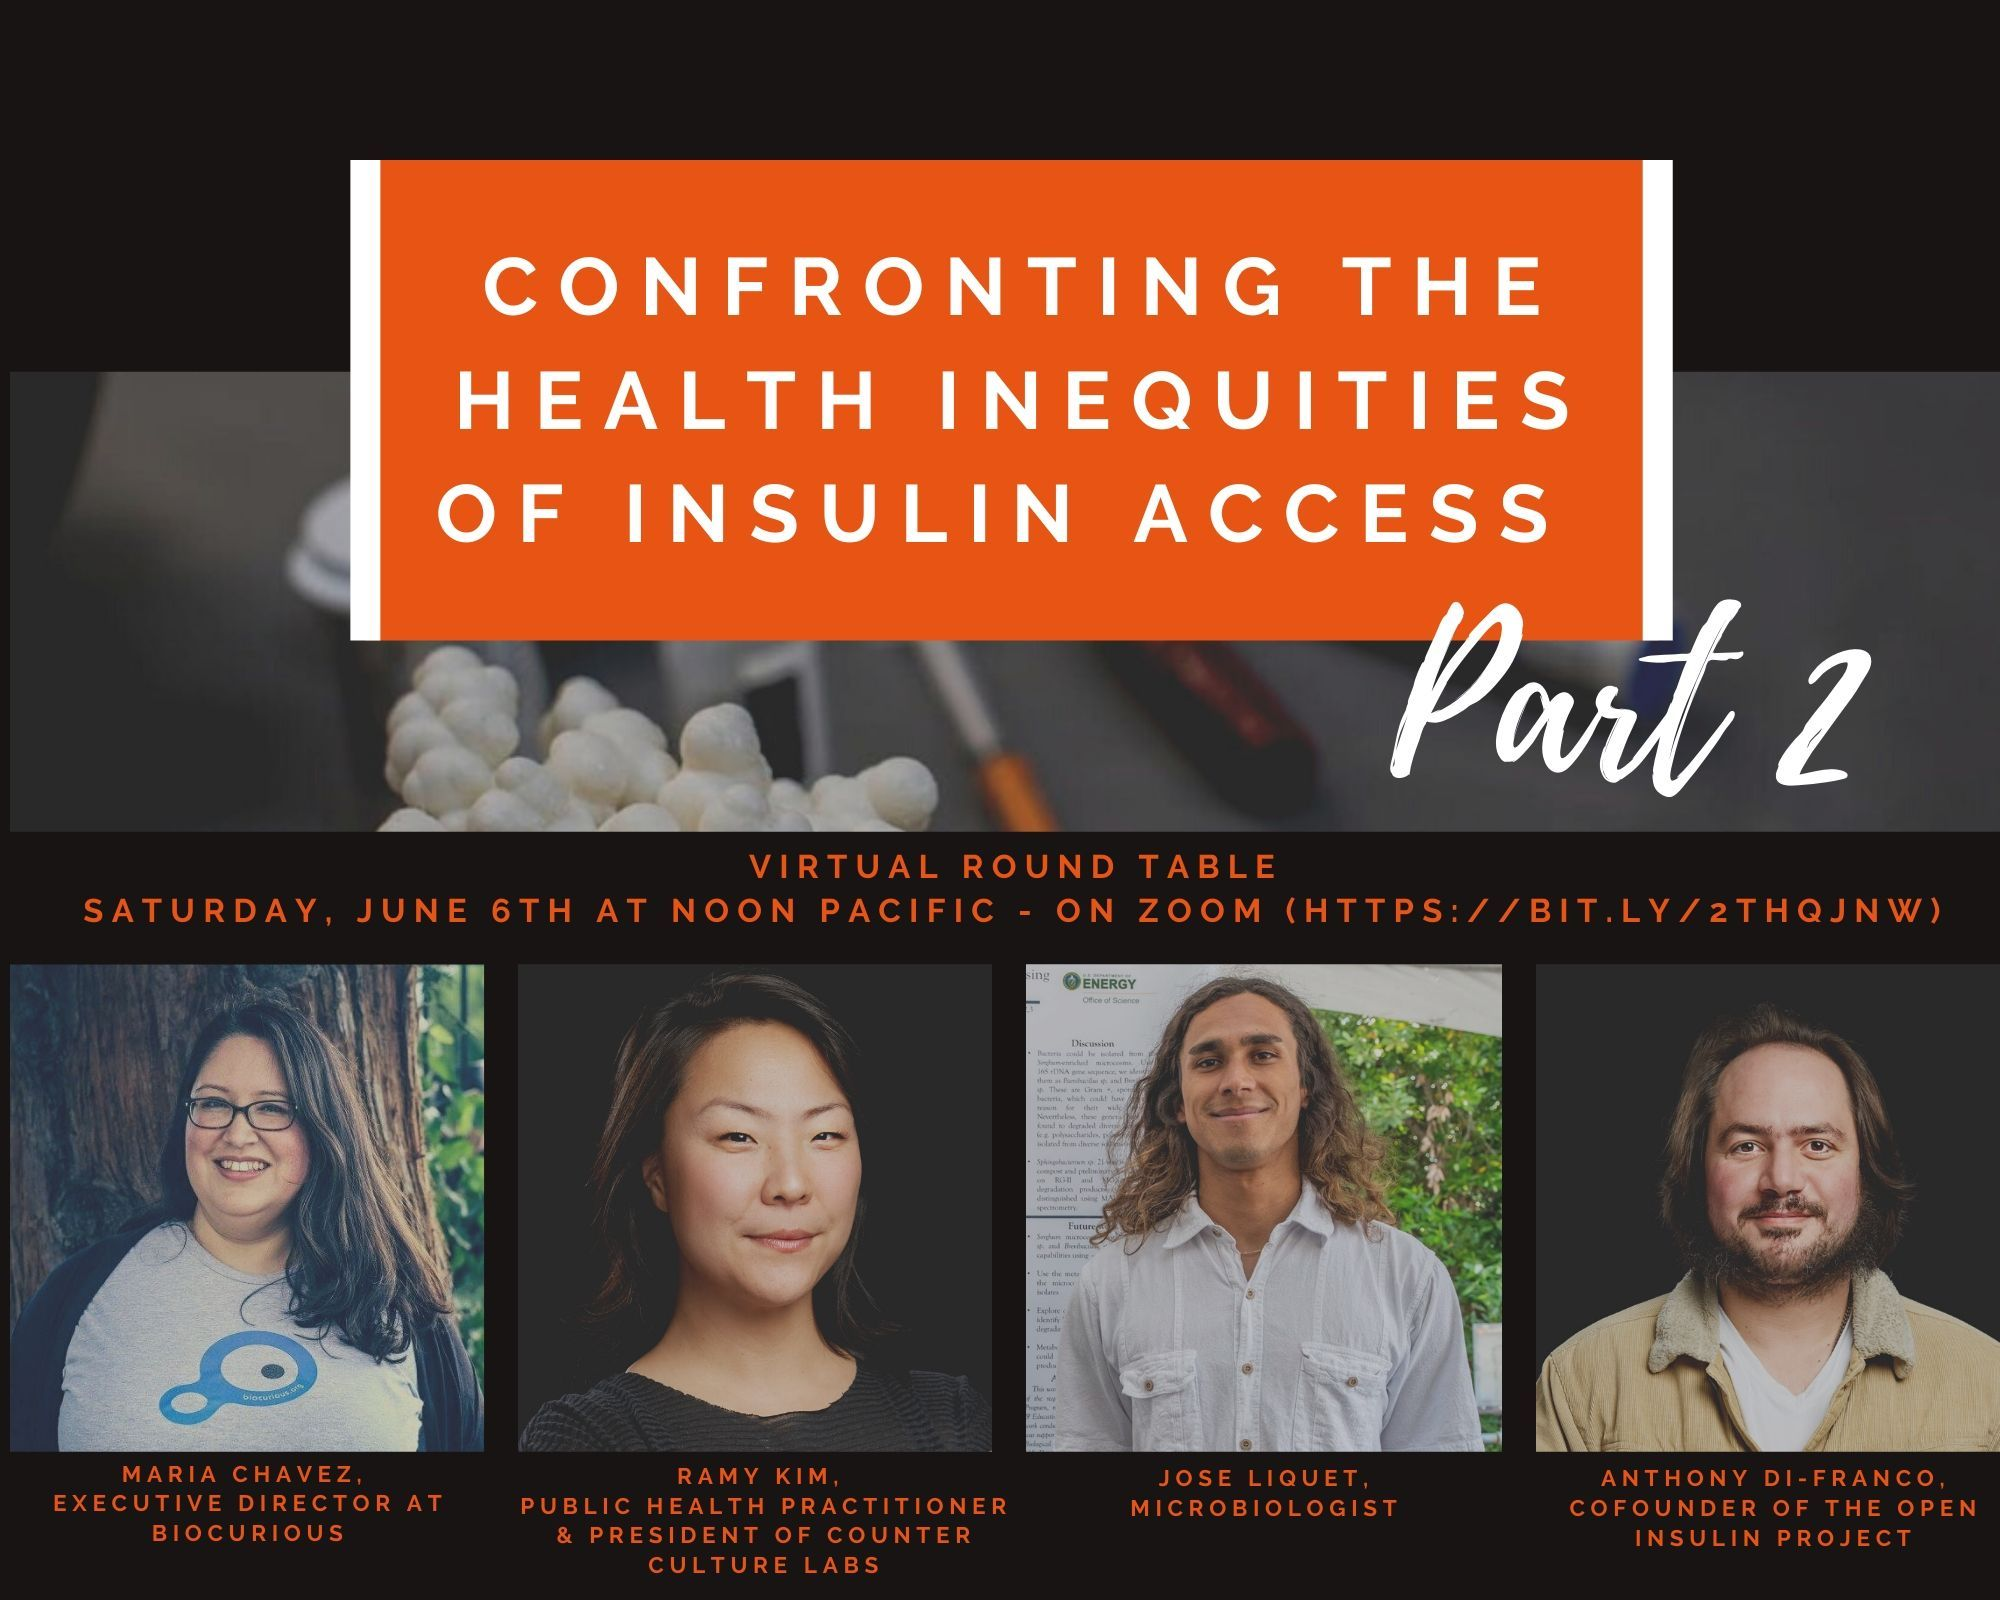 CONFRONTING THE HEALTH INEQUITIES OF INSULIN ACCESS: Virtual Round Table Saturday, June 6th at Noon Pacific - On Zoom (https://bit.ly/2thqjnw)